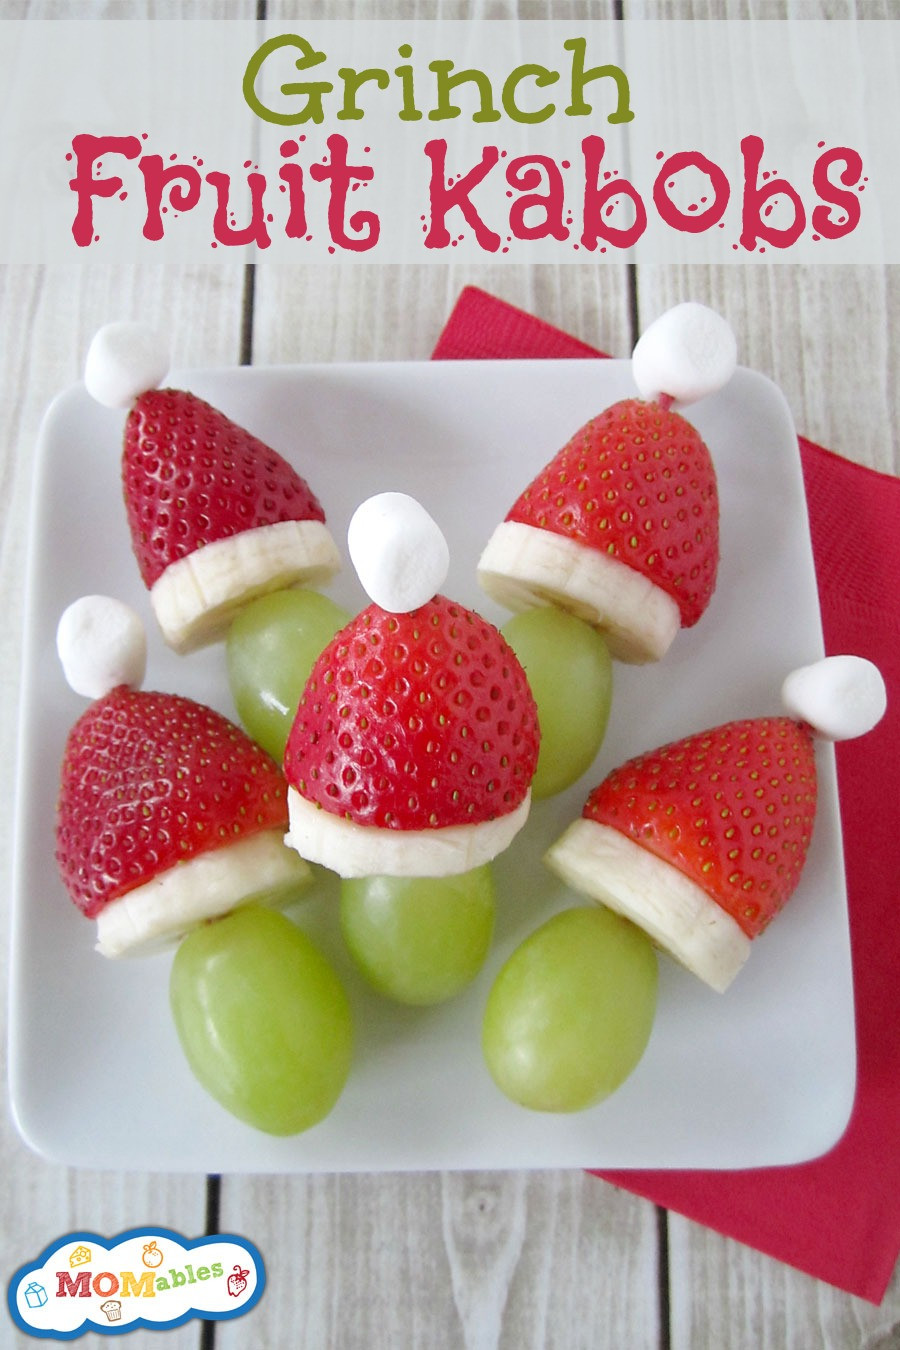 School Christmas Party Ideas  7 Fun & Healthy Food Ideas for the School Party